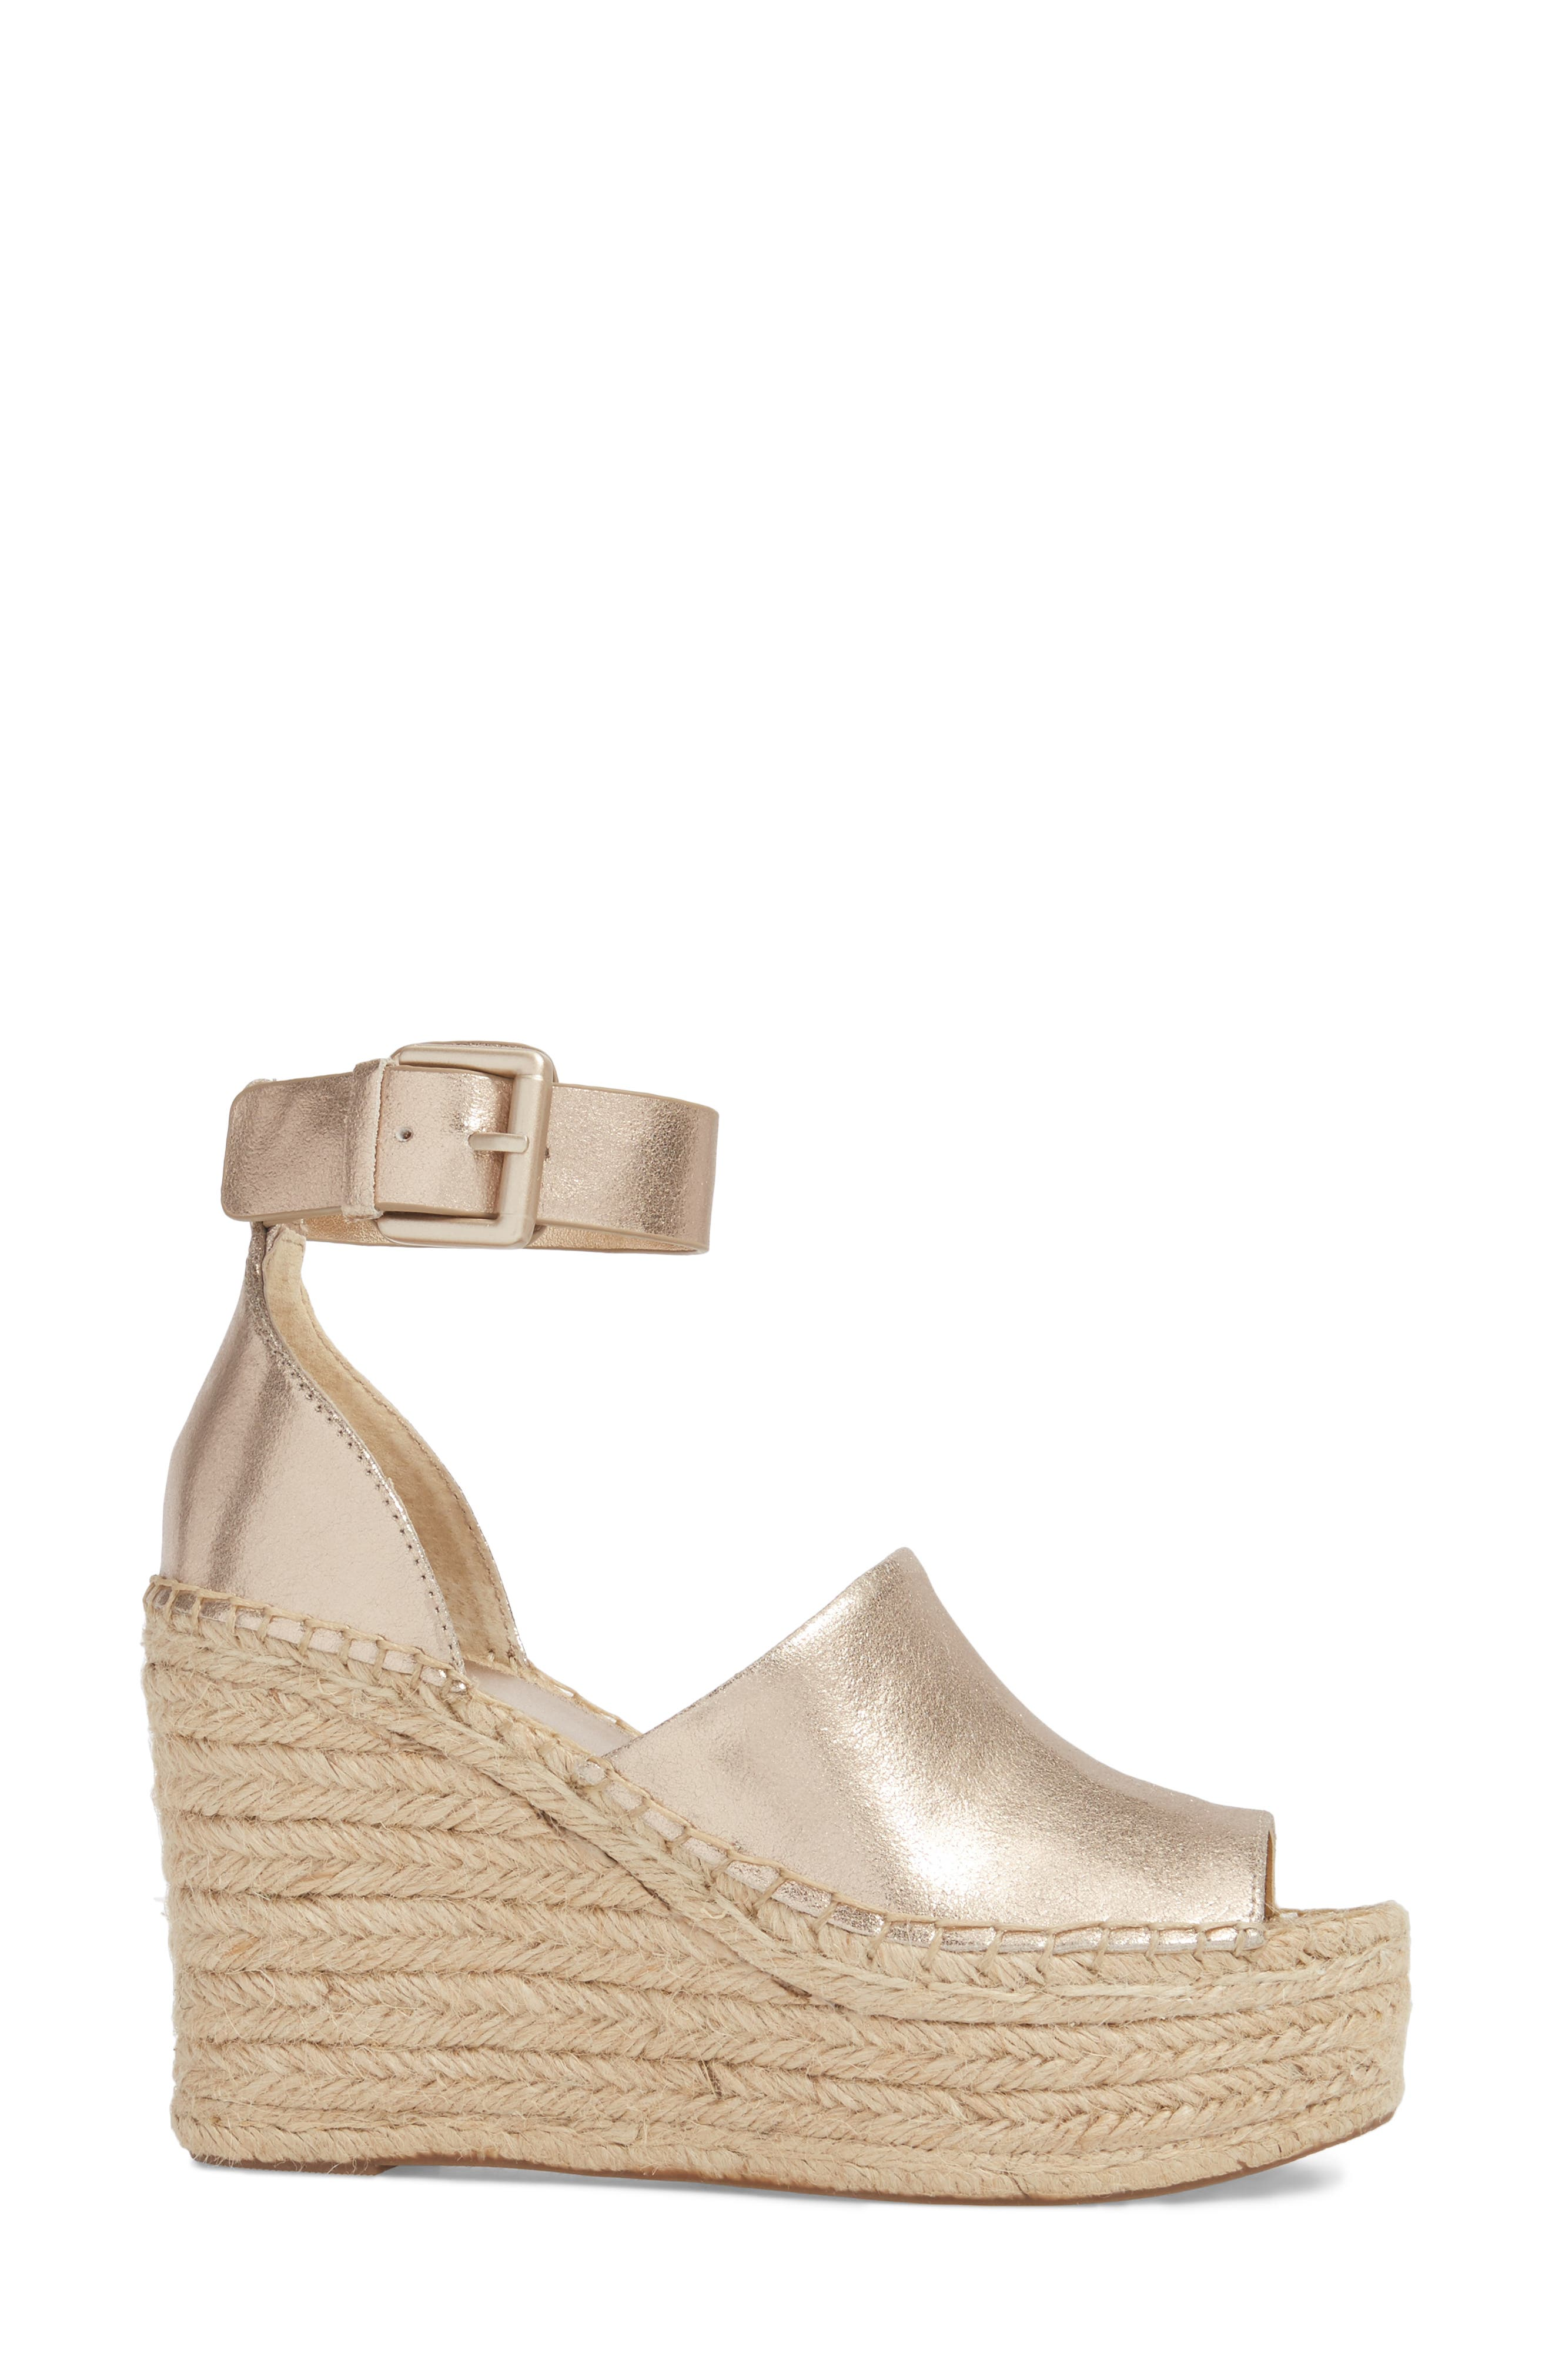 Adalyn Espadrille Wedge Sandal,                             Alternate thumbnail 3, color,                             Gold Leather